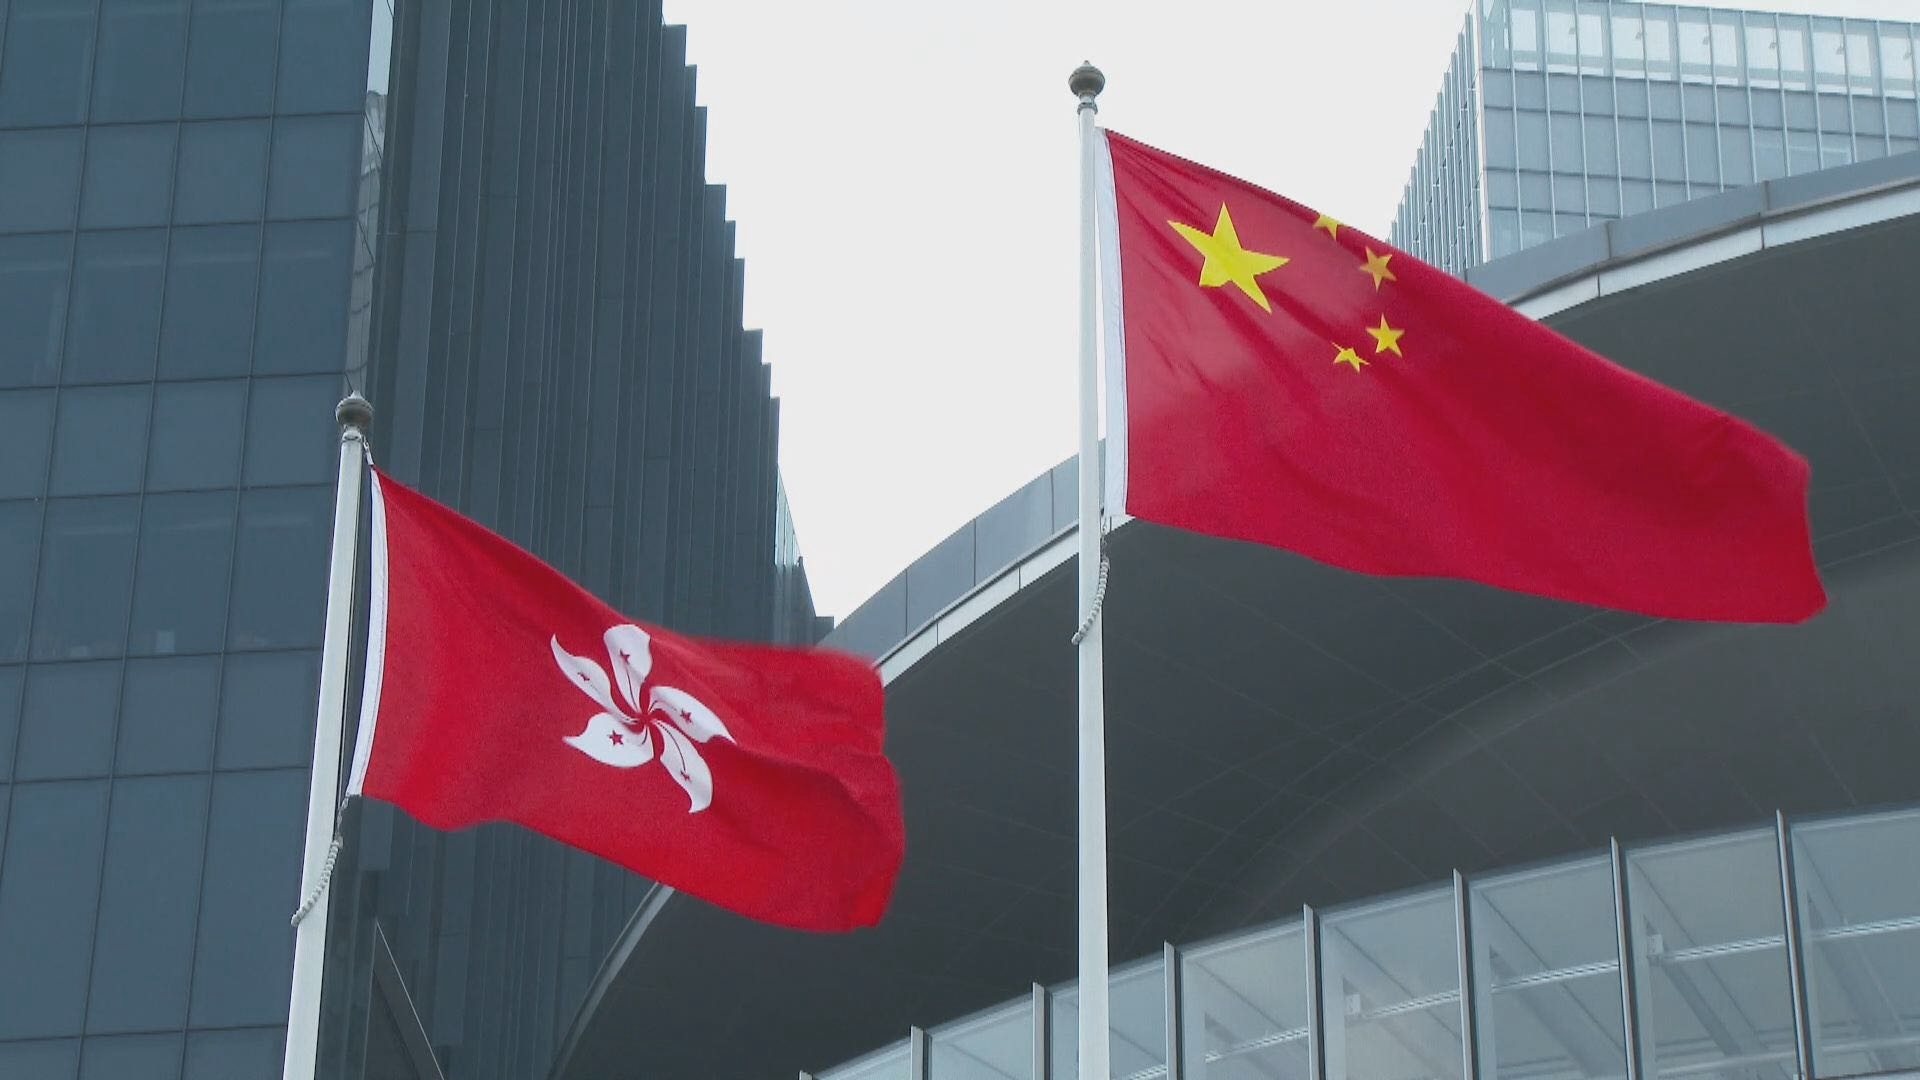 Luo Huining appointed head of Liaison office of central government in HK